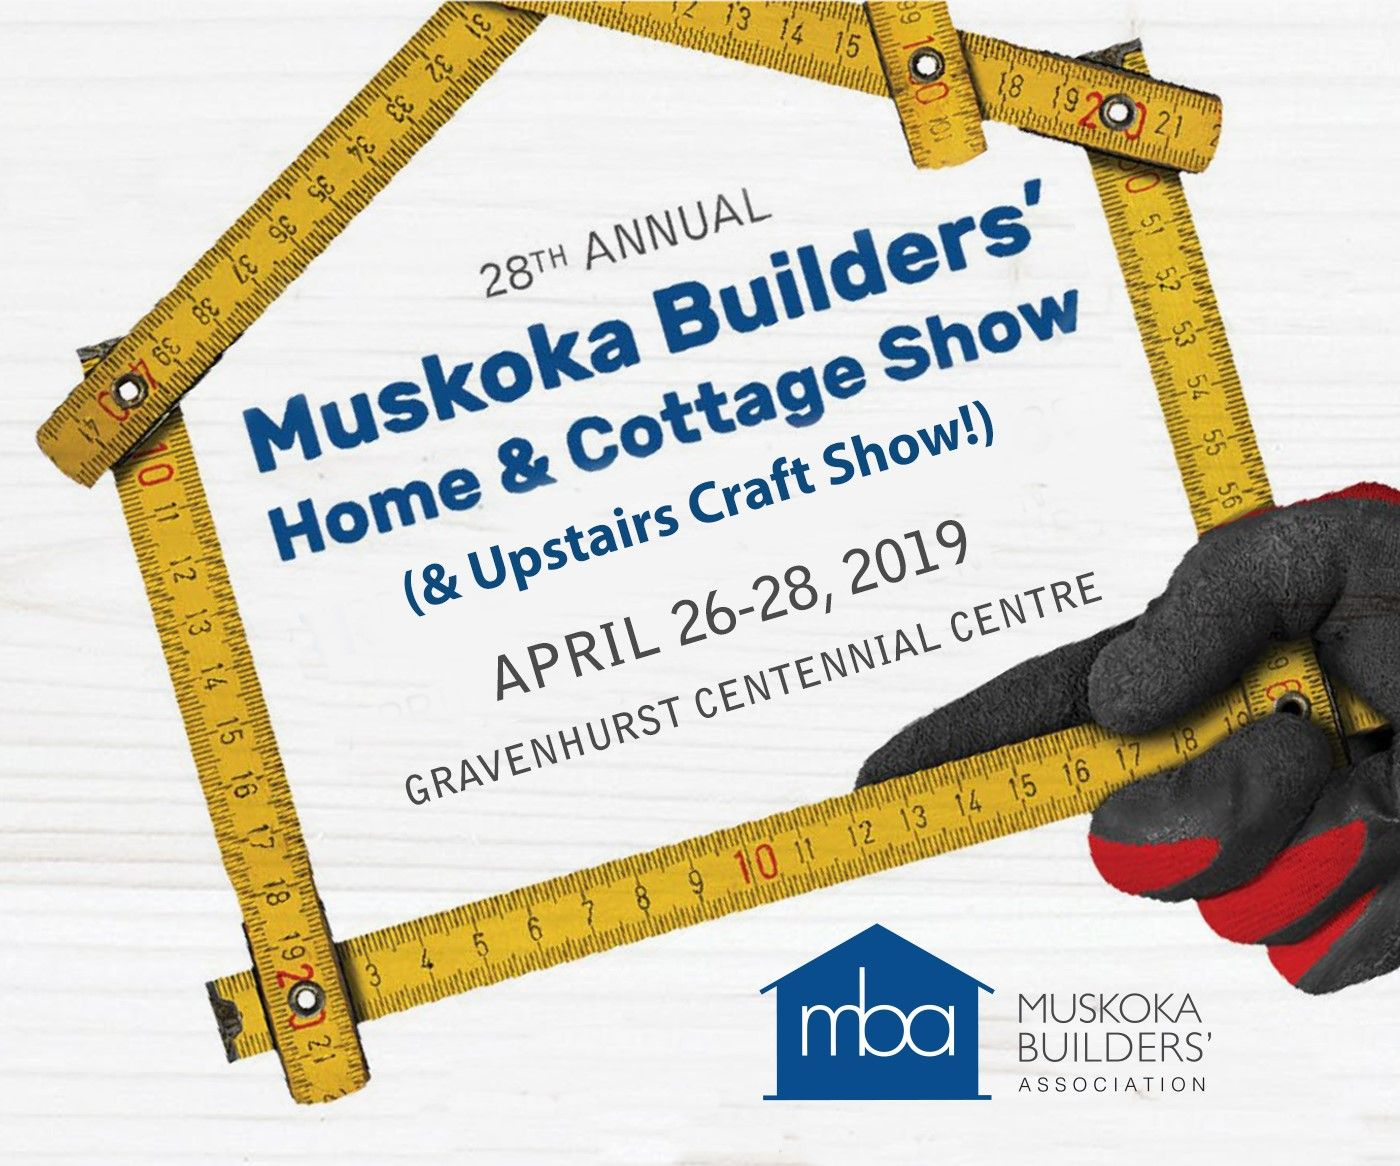 Muskoka Builders Home & Cottage Show